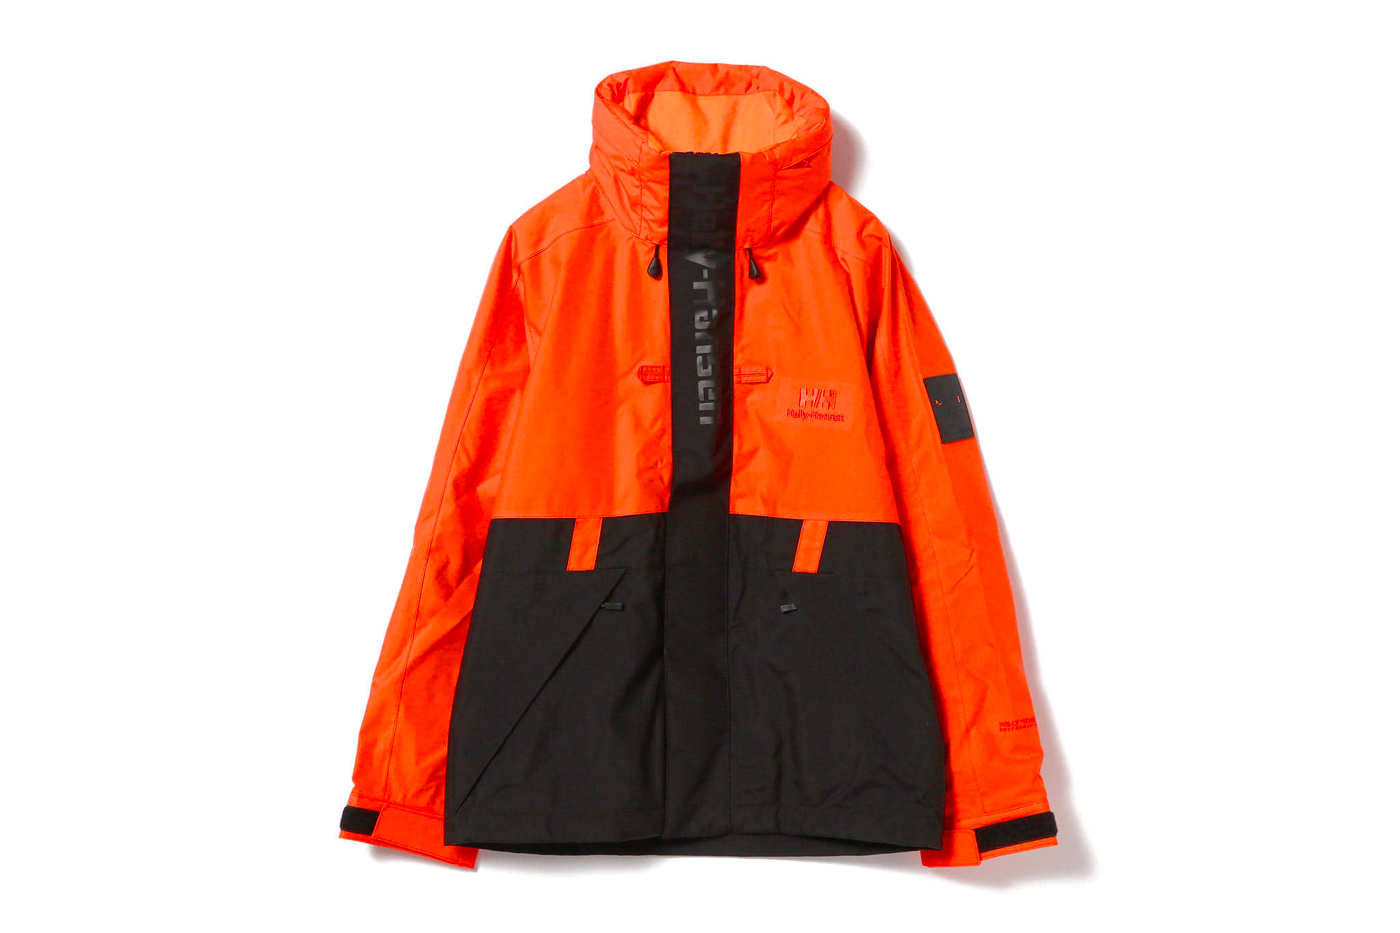 BEAMS Helly Hansen Spring Summer 2020 collection menswear streetwear camping outdoor hiking trekking t shirts socks hats caps waterproof camp graphics fishing vests tactical functional utility